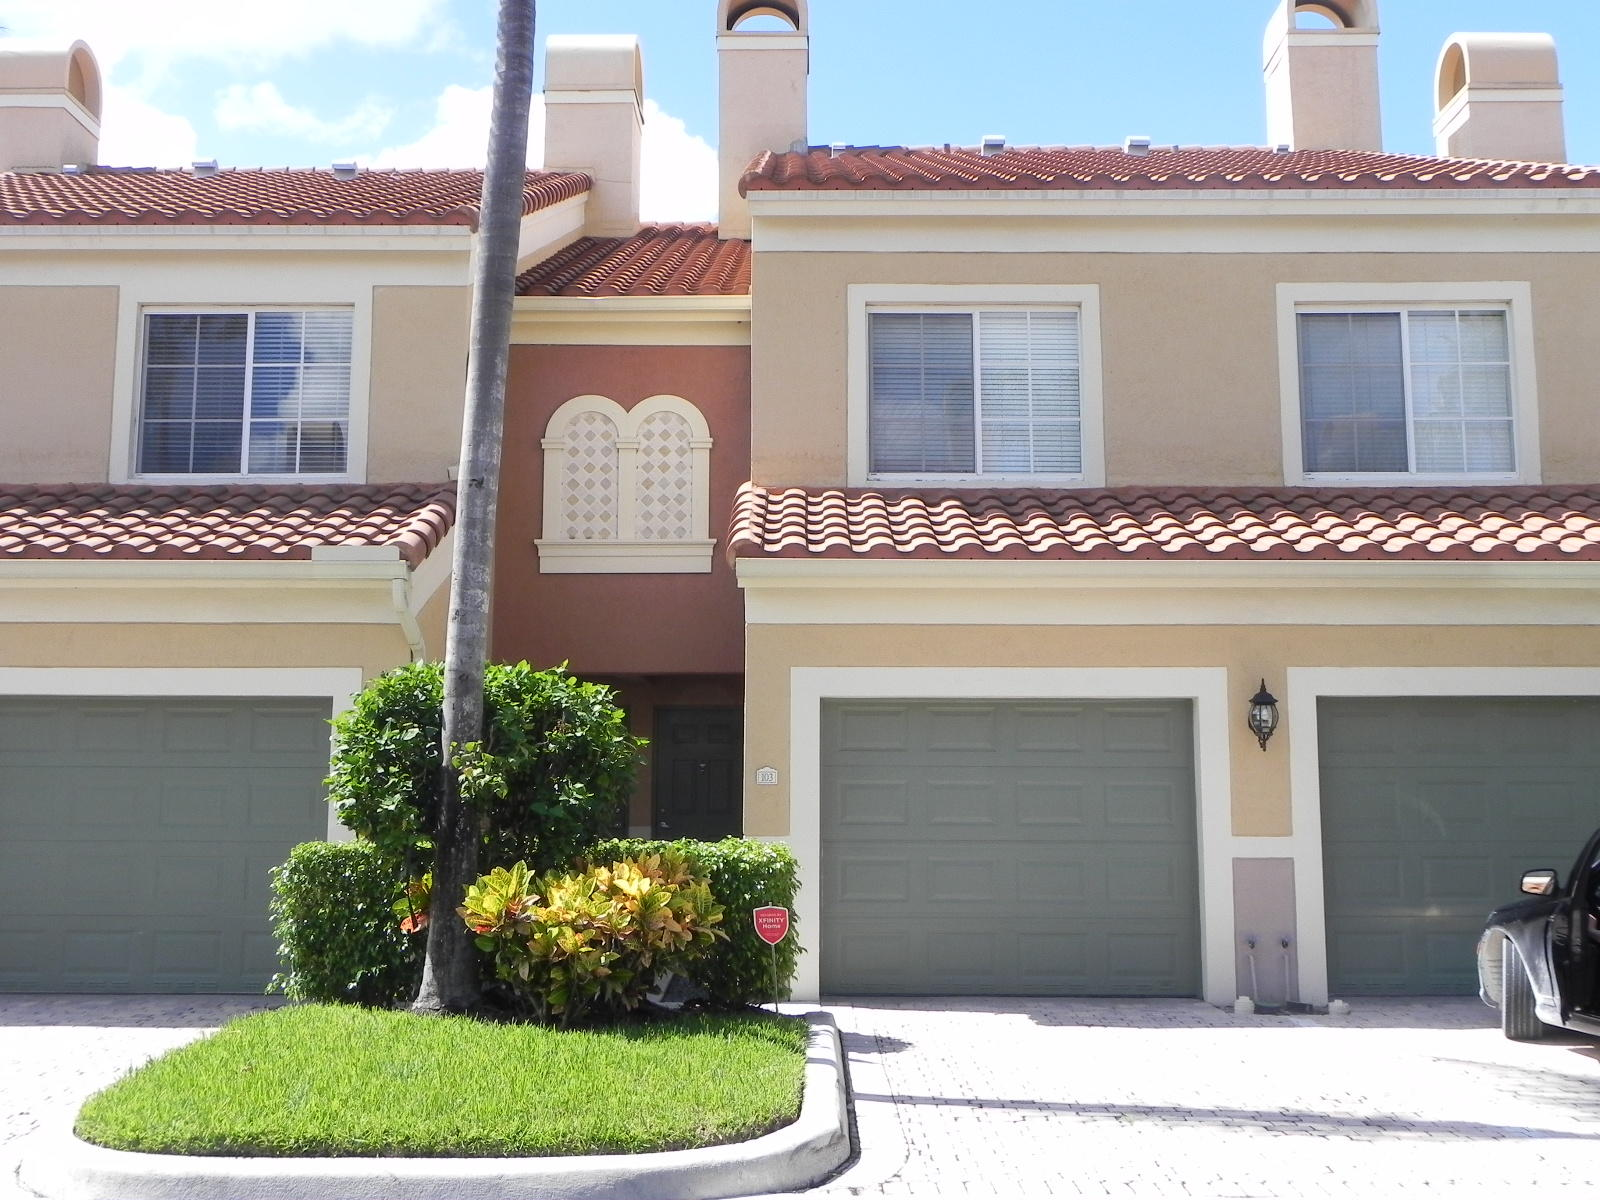 Home for sale in St. Andrews Wellington Florida